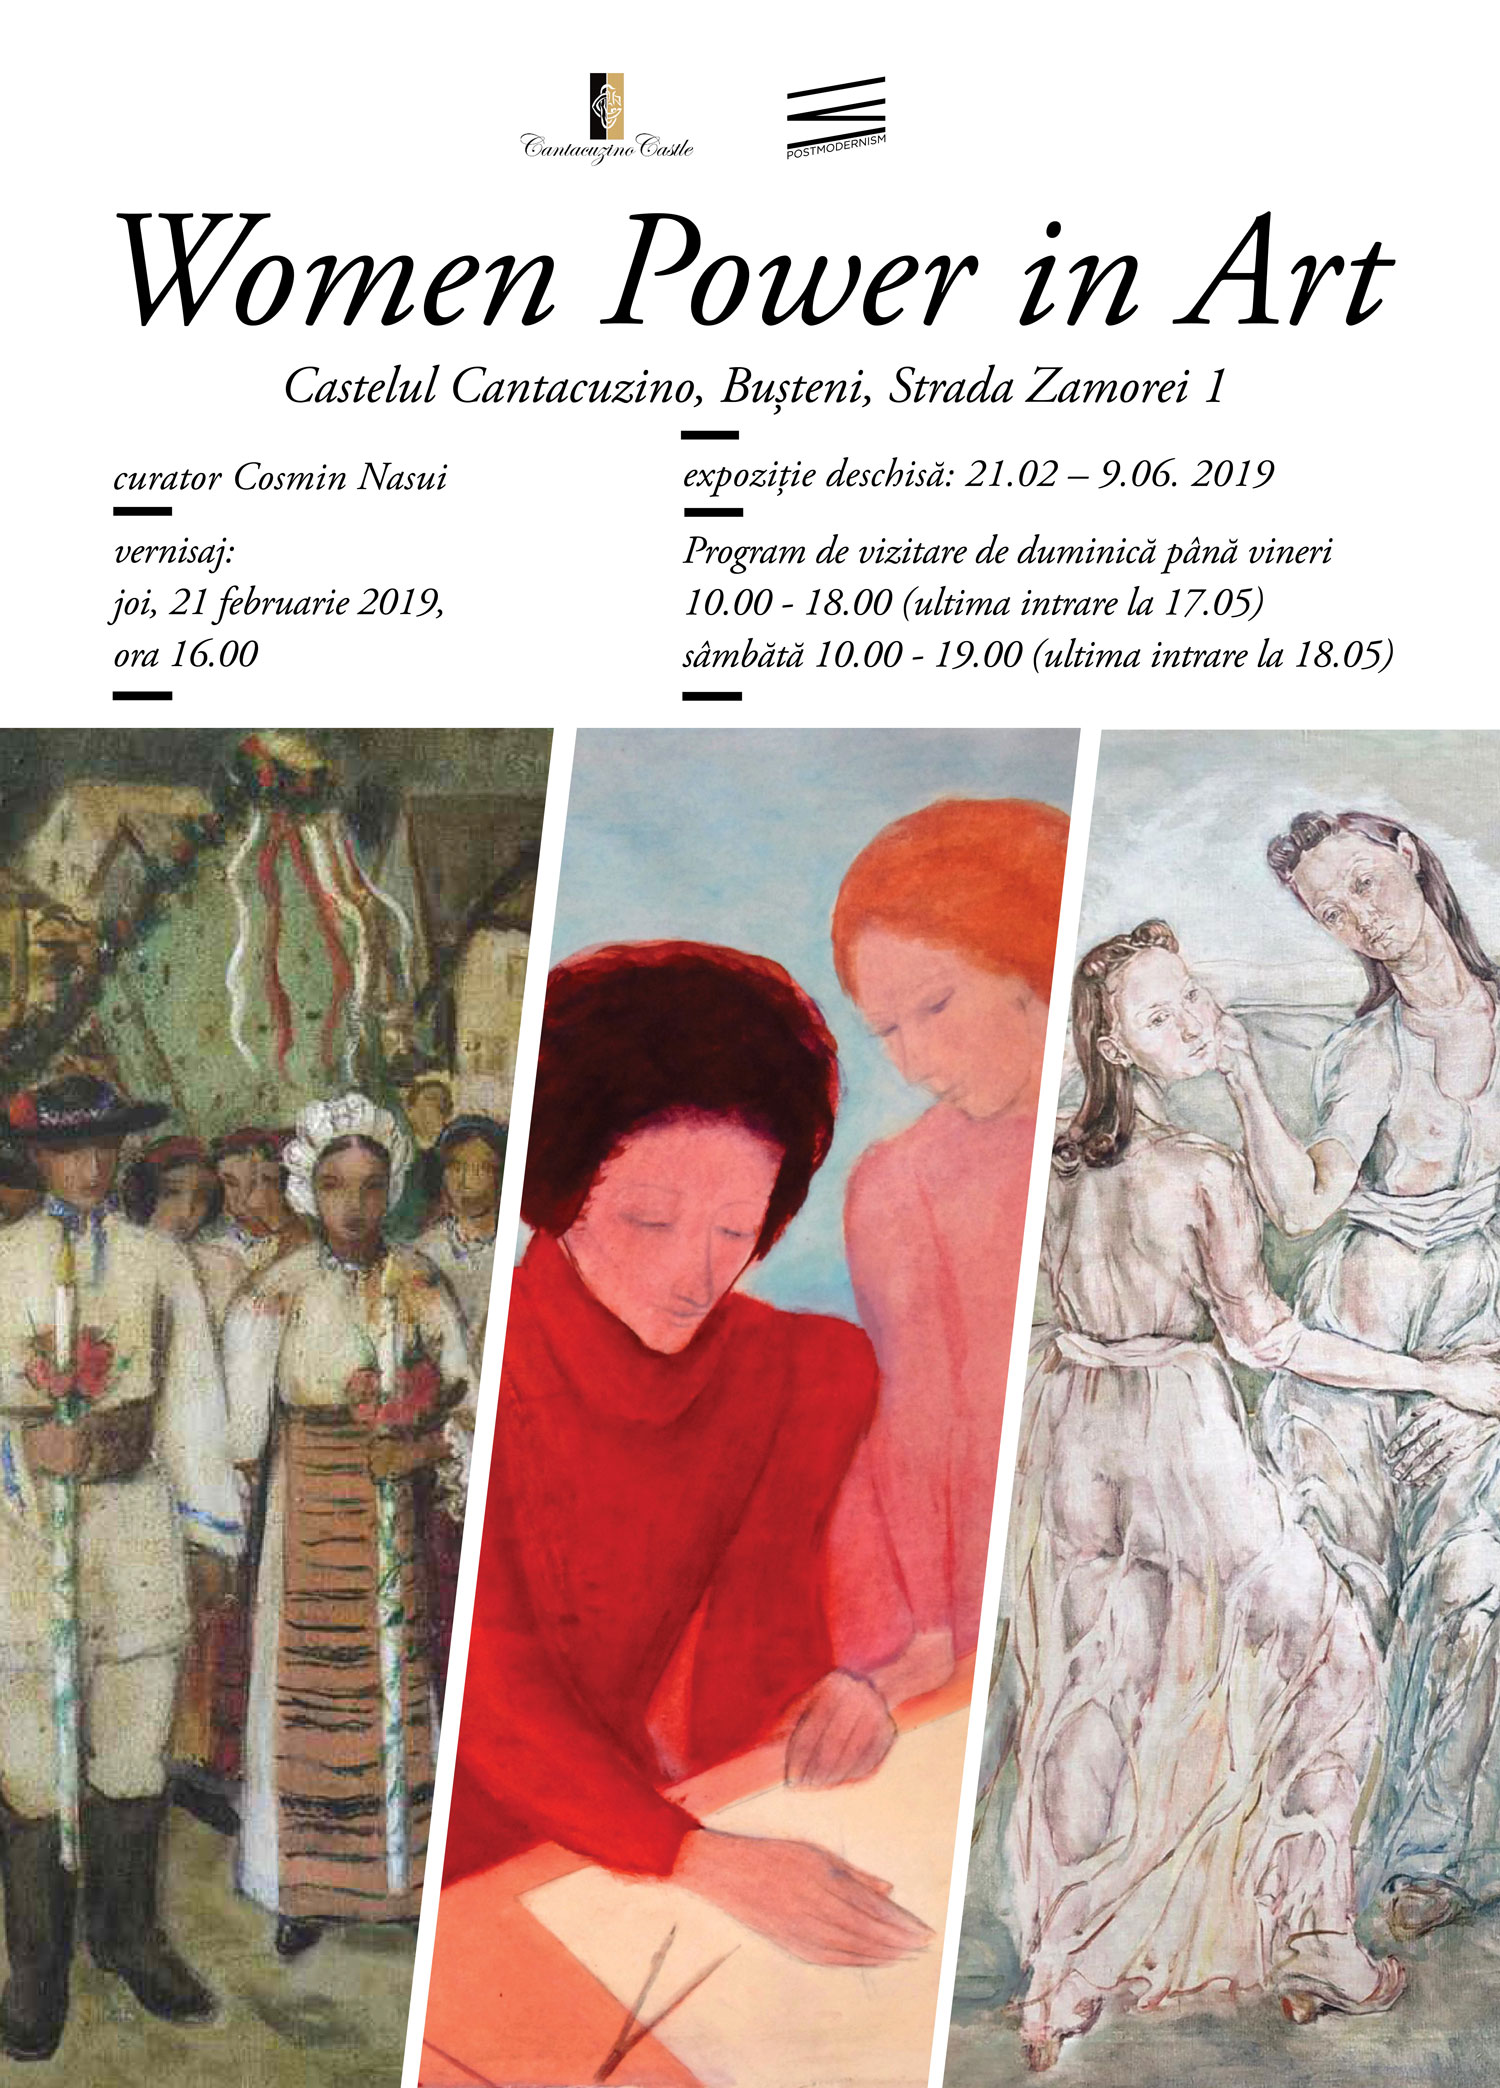 women power in art show_cantacuzino.jpg